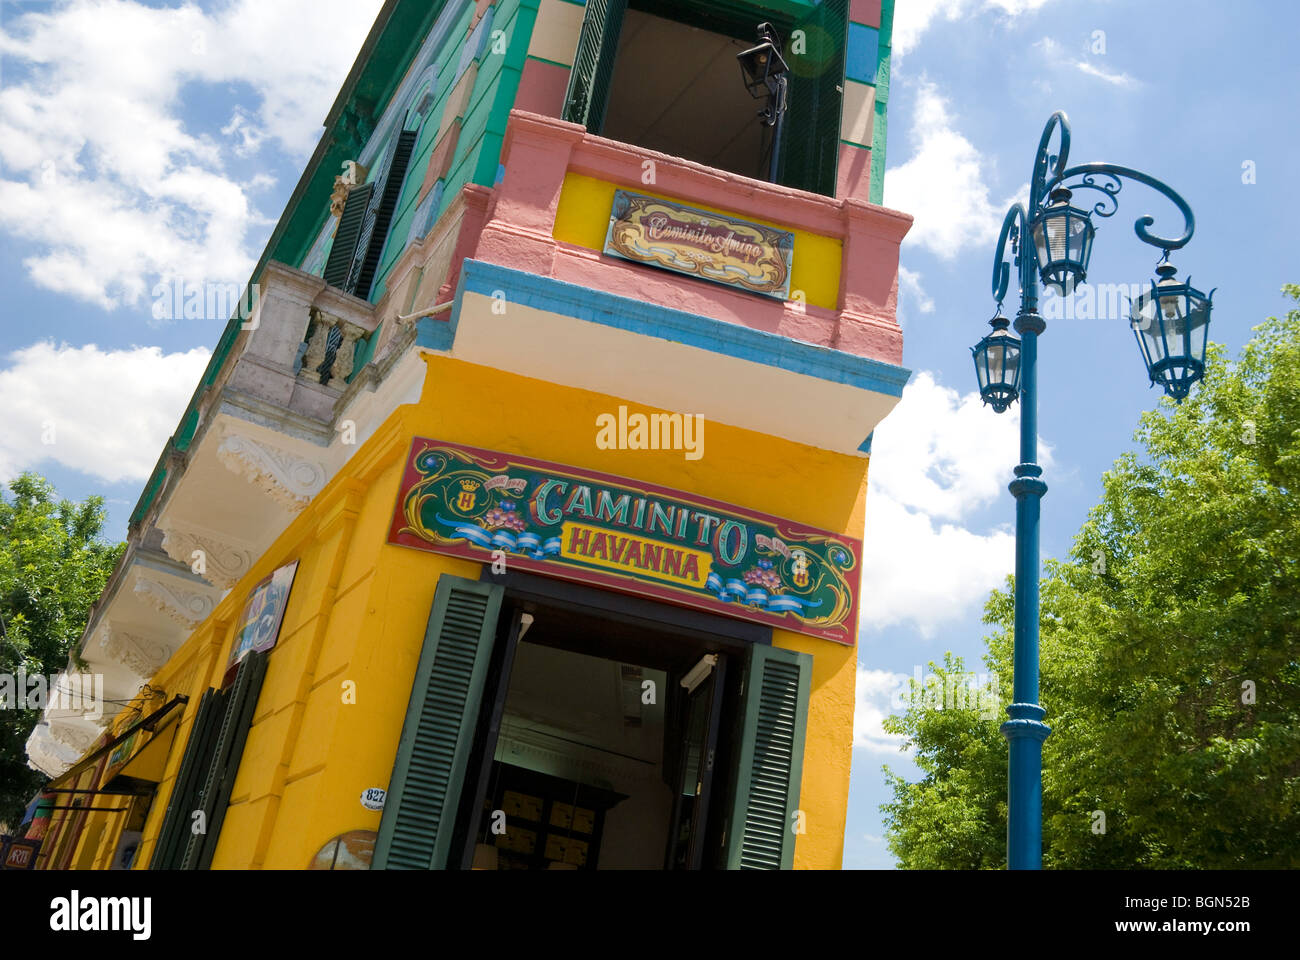 Colorful buildings lining the pedestrian street, La Caminto in the neighborhood of La Boca, Buenos Aires, Argentina - Stock Image